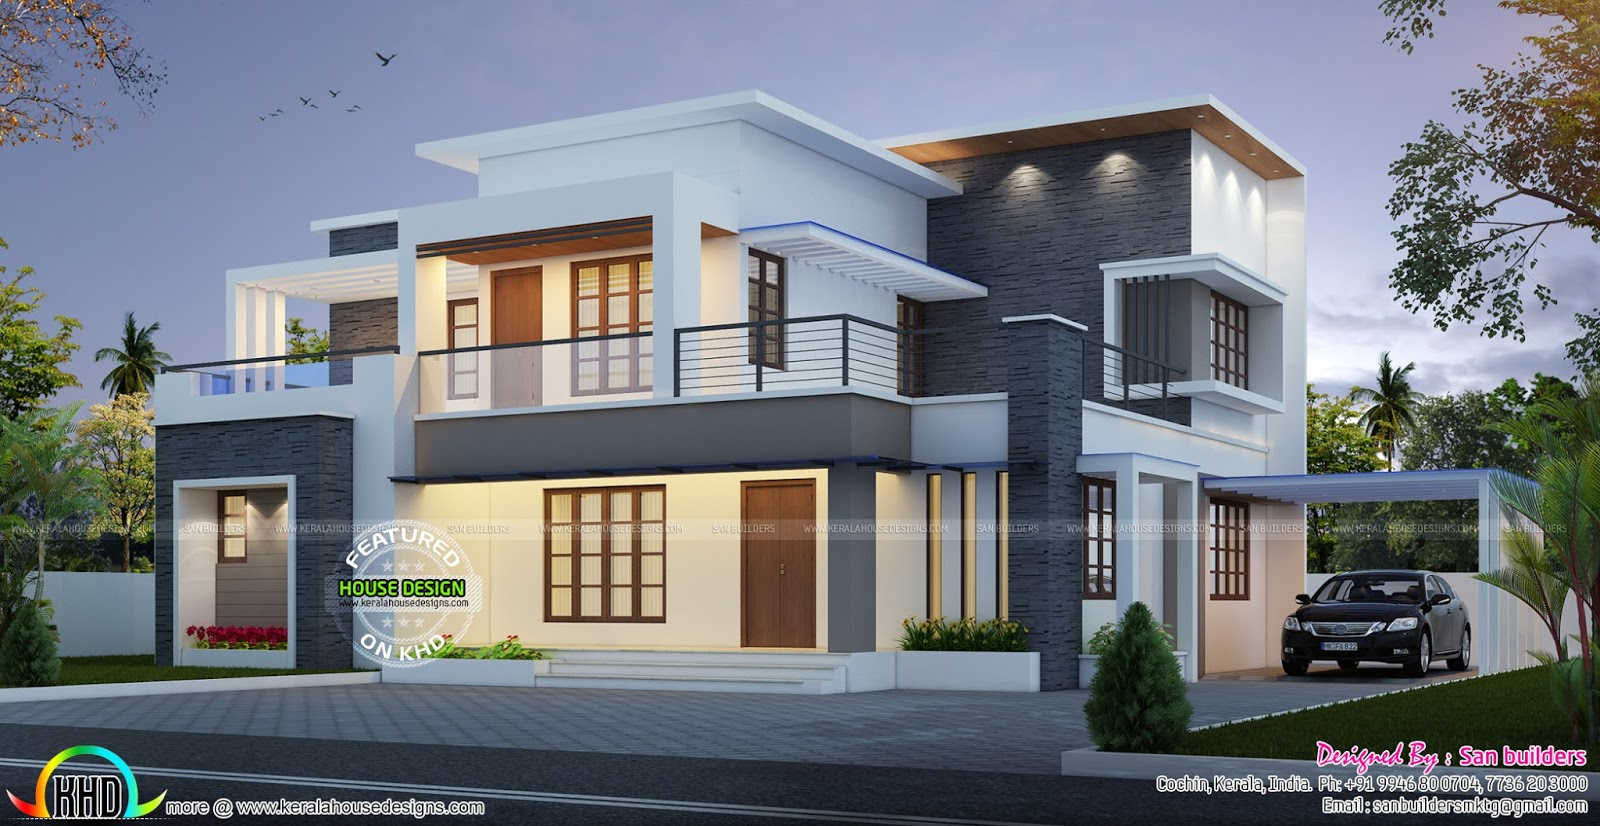 See floor plans read more please follow kerala home design - See Floor Plan Drawing And Facilities Read More Please Follow Kerala Home Design